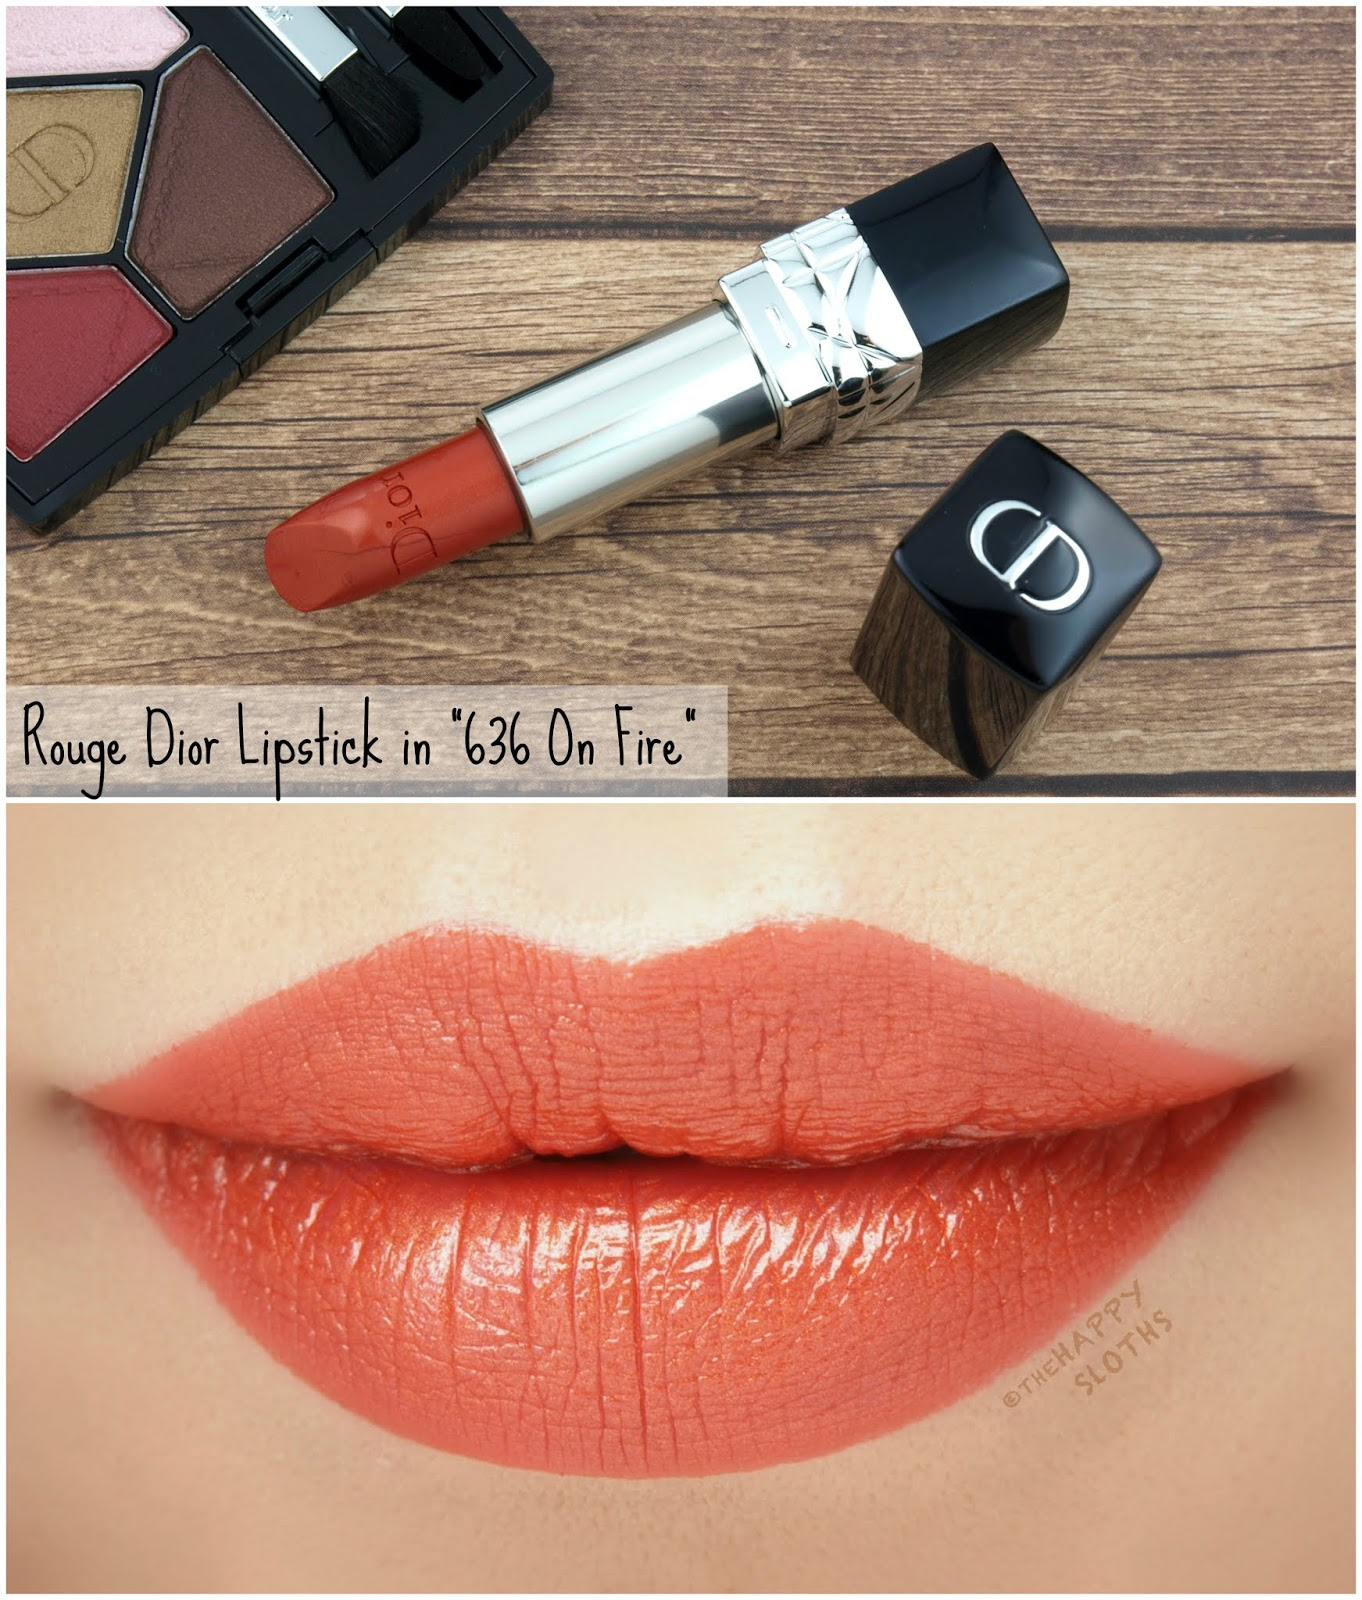 "Dior Fall 2018 Dior en Diable Collection | Rouge Dior Couture Colour Lipstick in ""636 On Fire"": Review and Swatches"